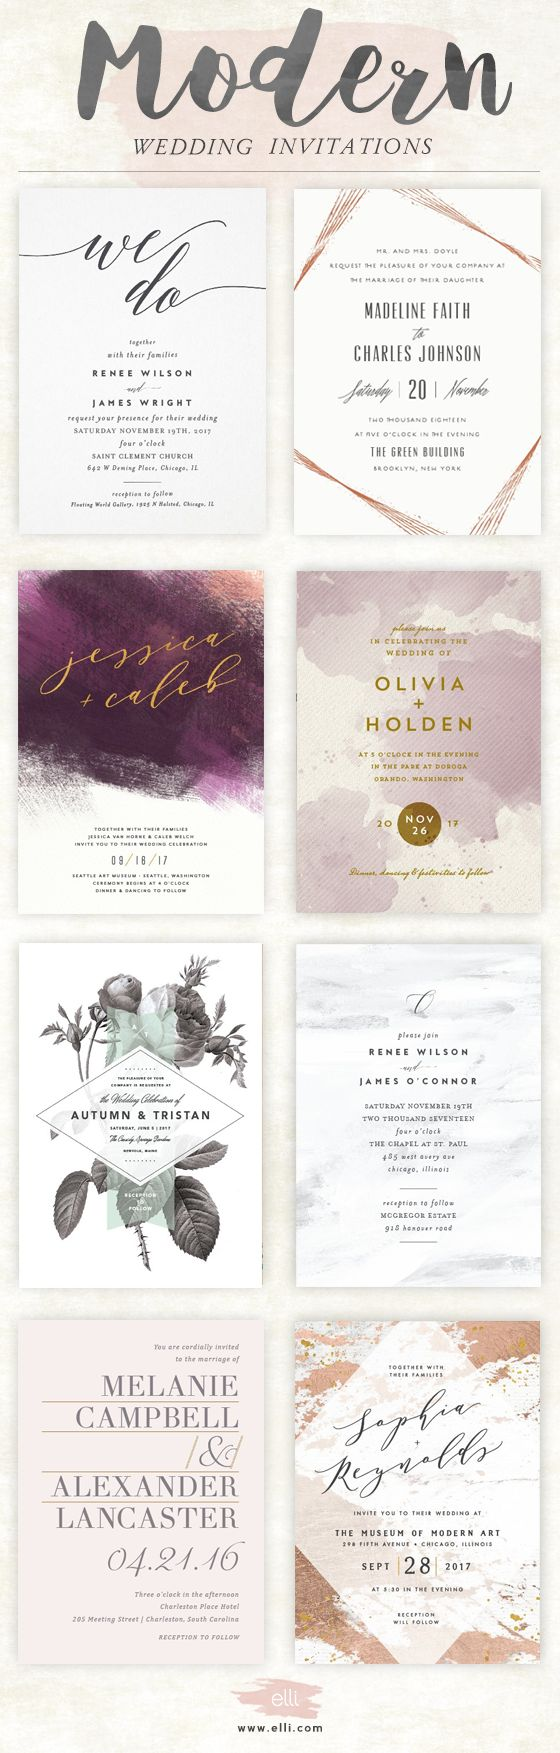 Another invite design idea we could imitate modern gold foil 18th another invite design idea we could imitate modern gold foil 18th birthday printable digital by cartamodello party pinterest digital birthdays and stopboris Images